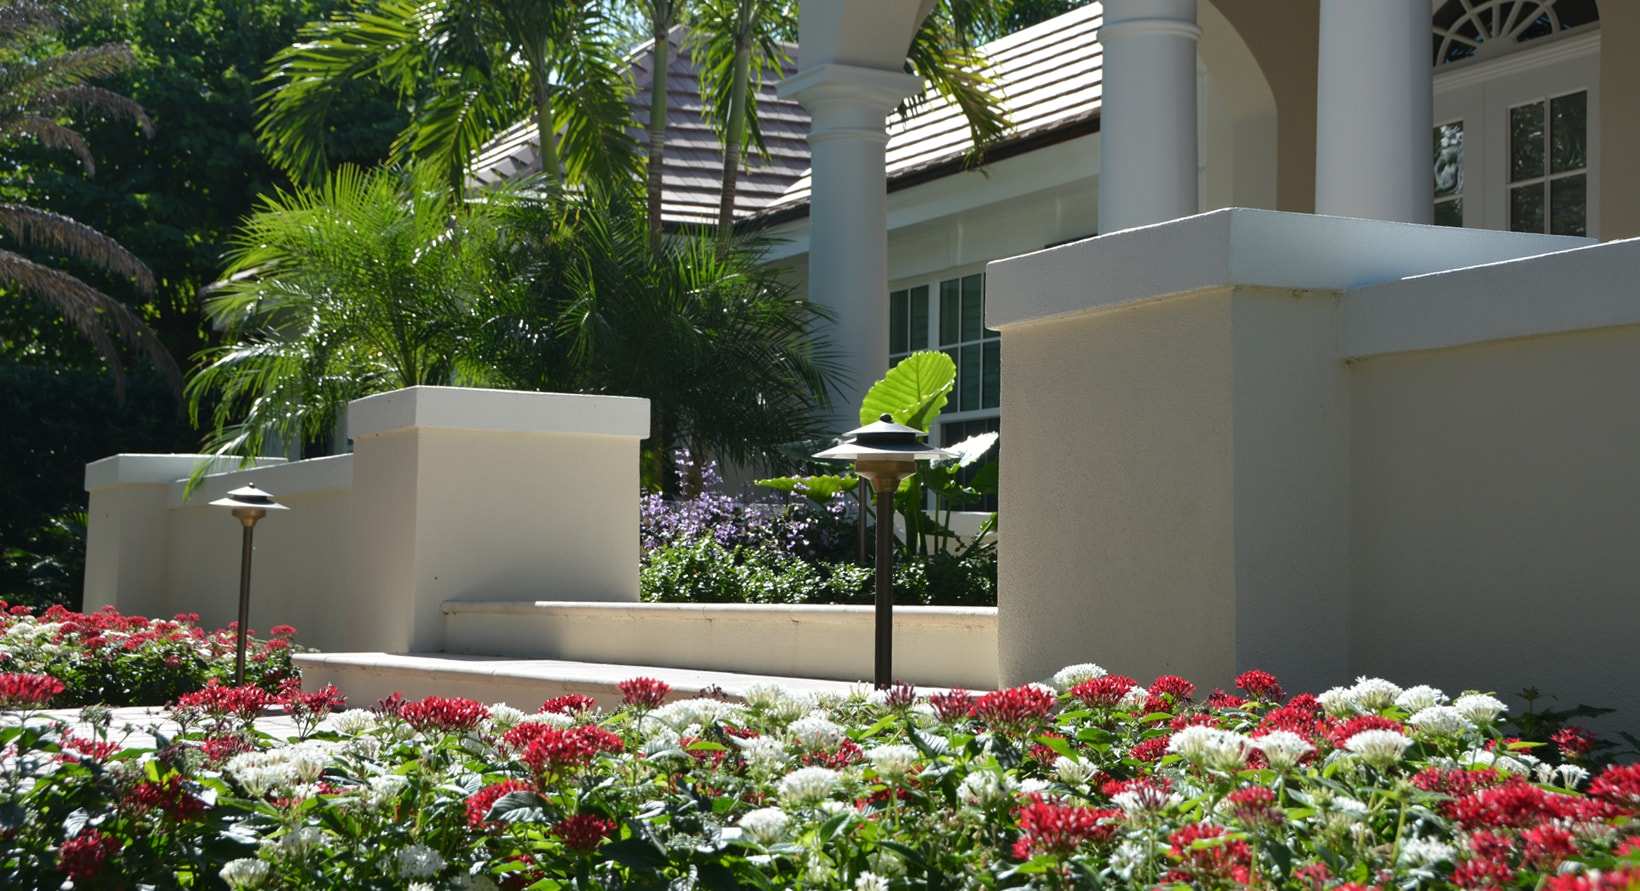 Aiello landscape vero beach entryway landscaping